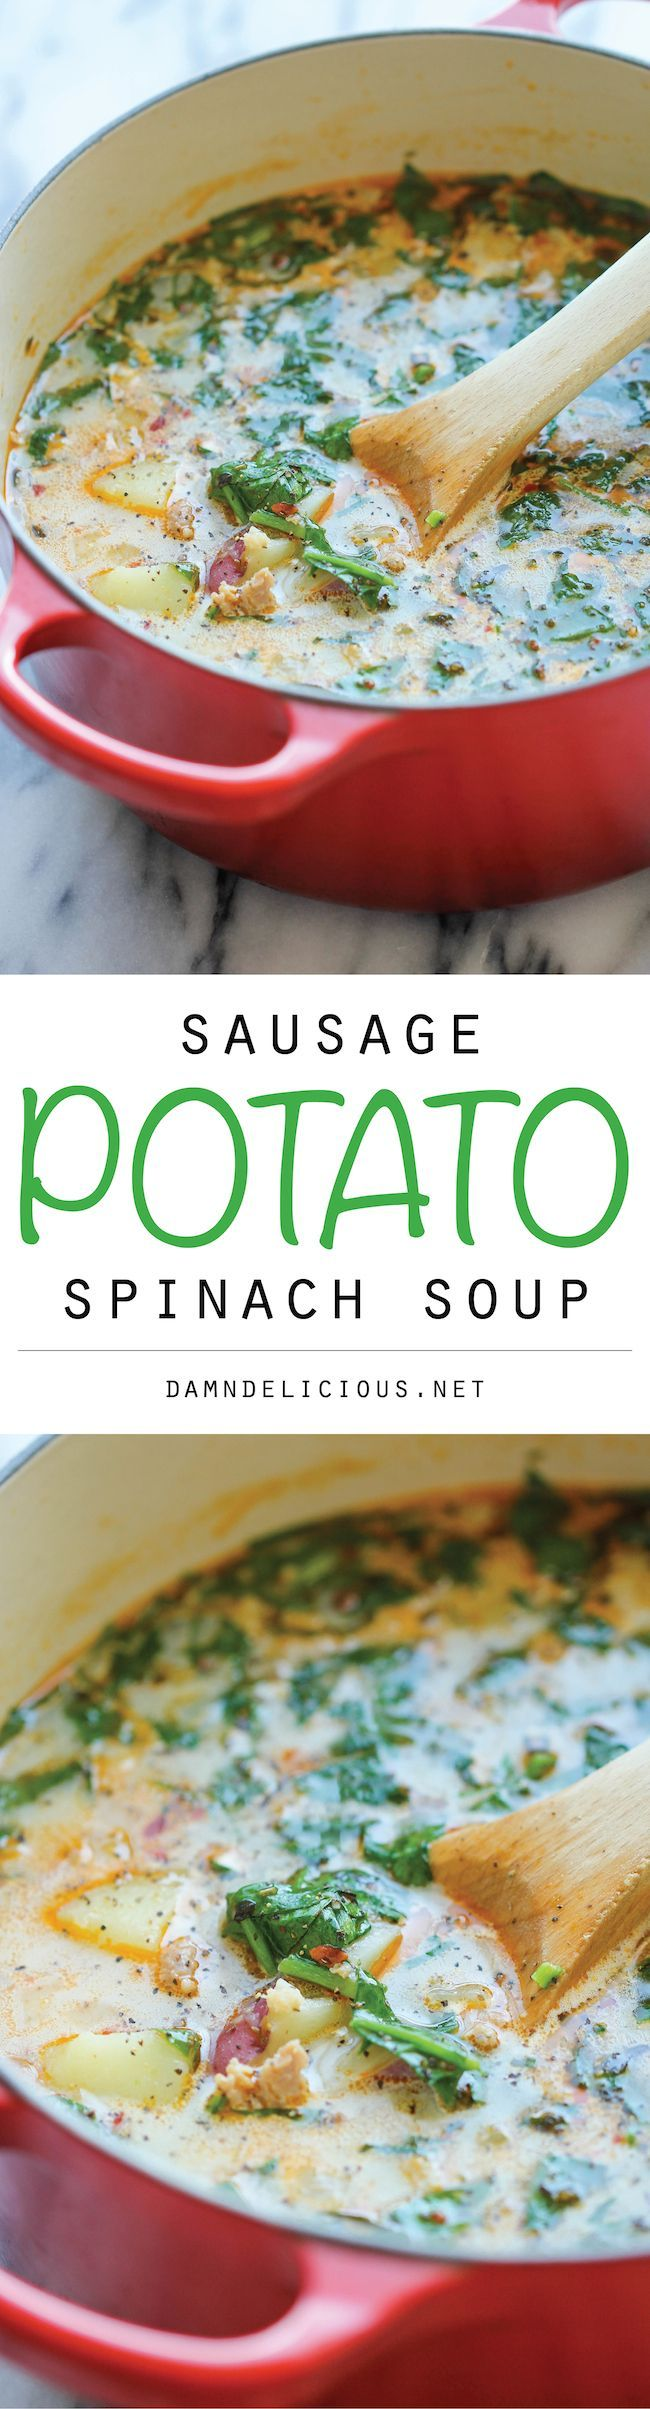 Sausage, Potato and Spinach Soup - A hearty, comforting soup that's so easy and simple to make, loaded with tons of fiber and flavor!